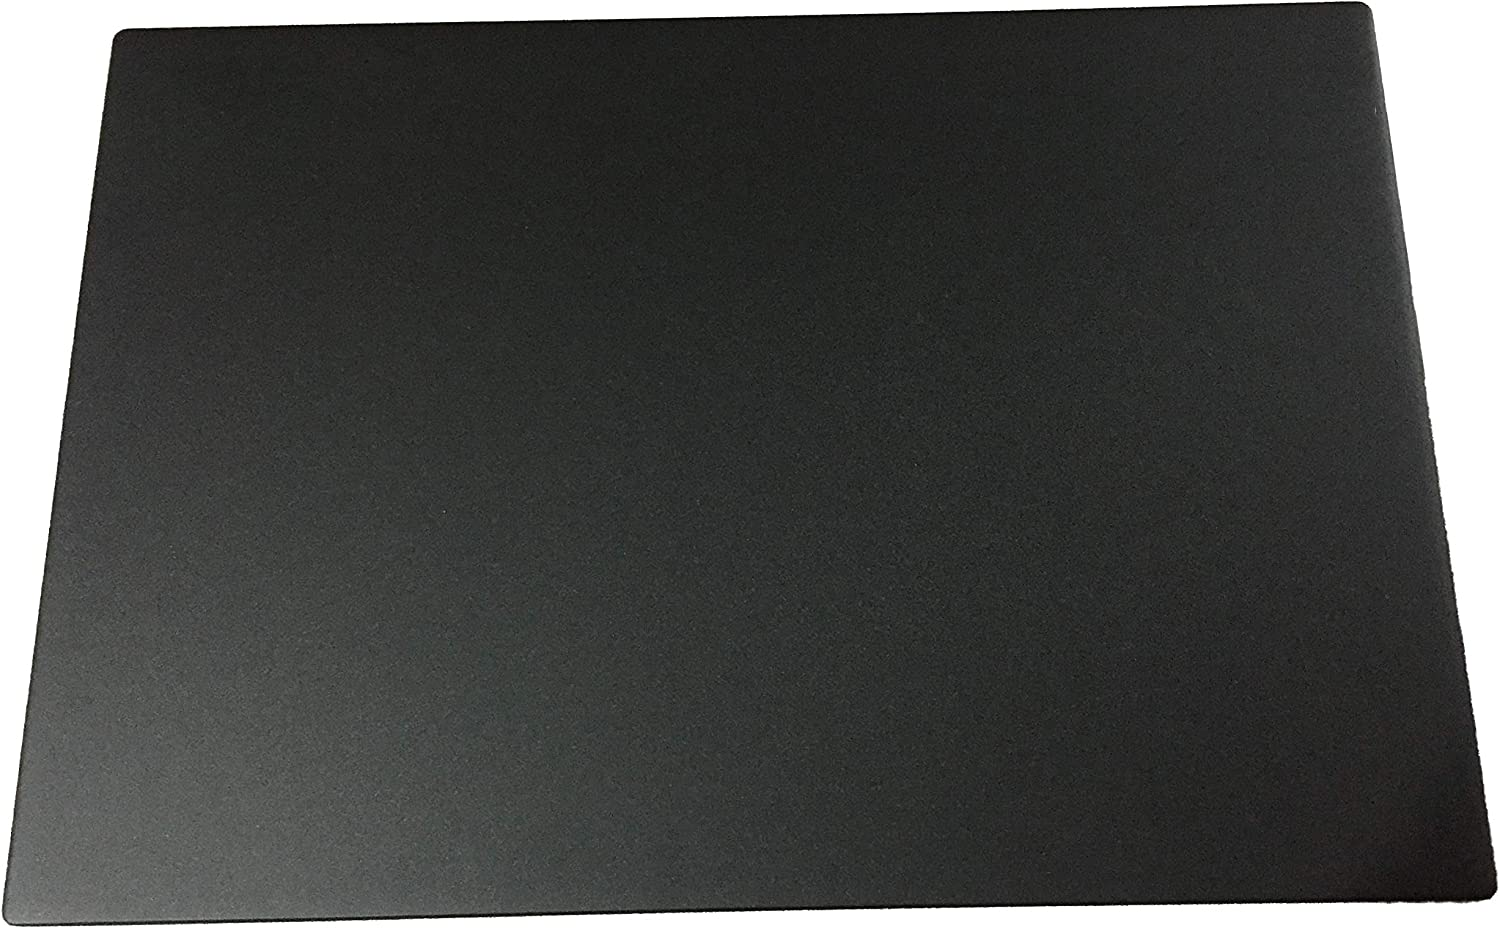 04X5565 Rear Lid LCD Back Cover for Lenovo ThinkPad X1 Carbon 2nd 20A7 20A8 3rd 20BS 20BT for Touch Screen, NOT fit Non-Touch Screen, Compatible 04X5565 60.4LY06.004 Compatible 04X5565